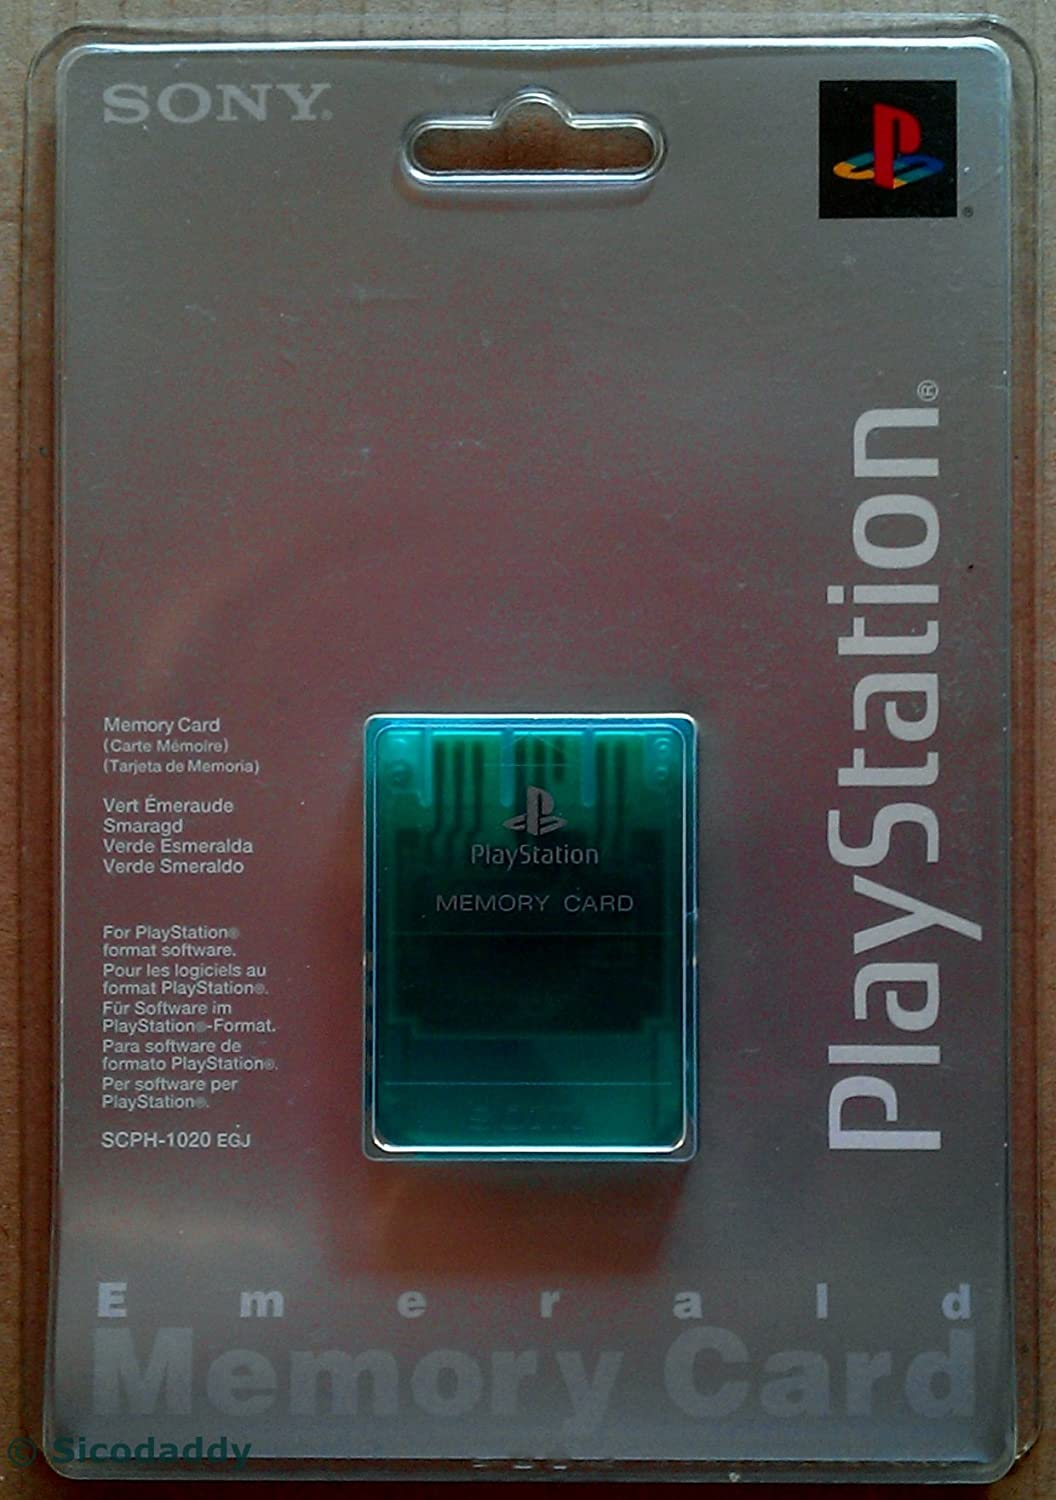 Amazon.com: PlayStation PsOne Memory Card Emerald Green ...